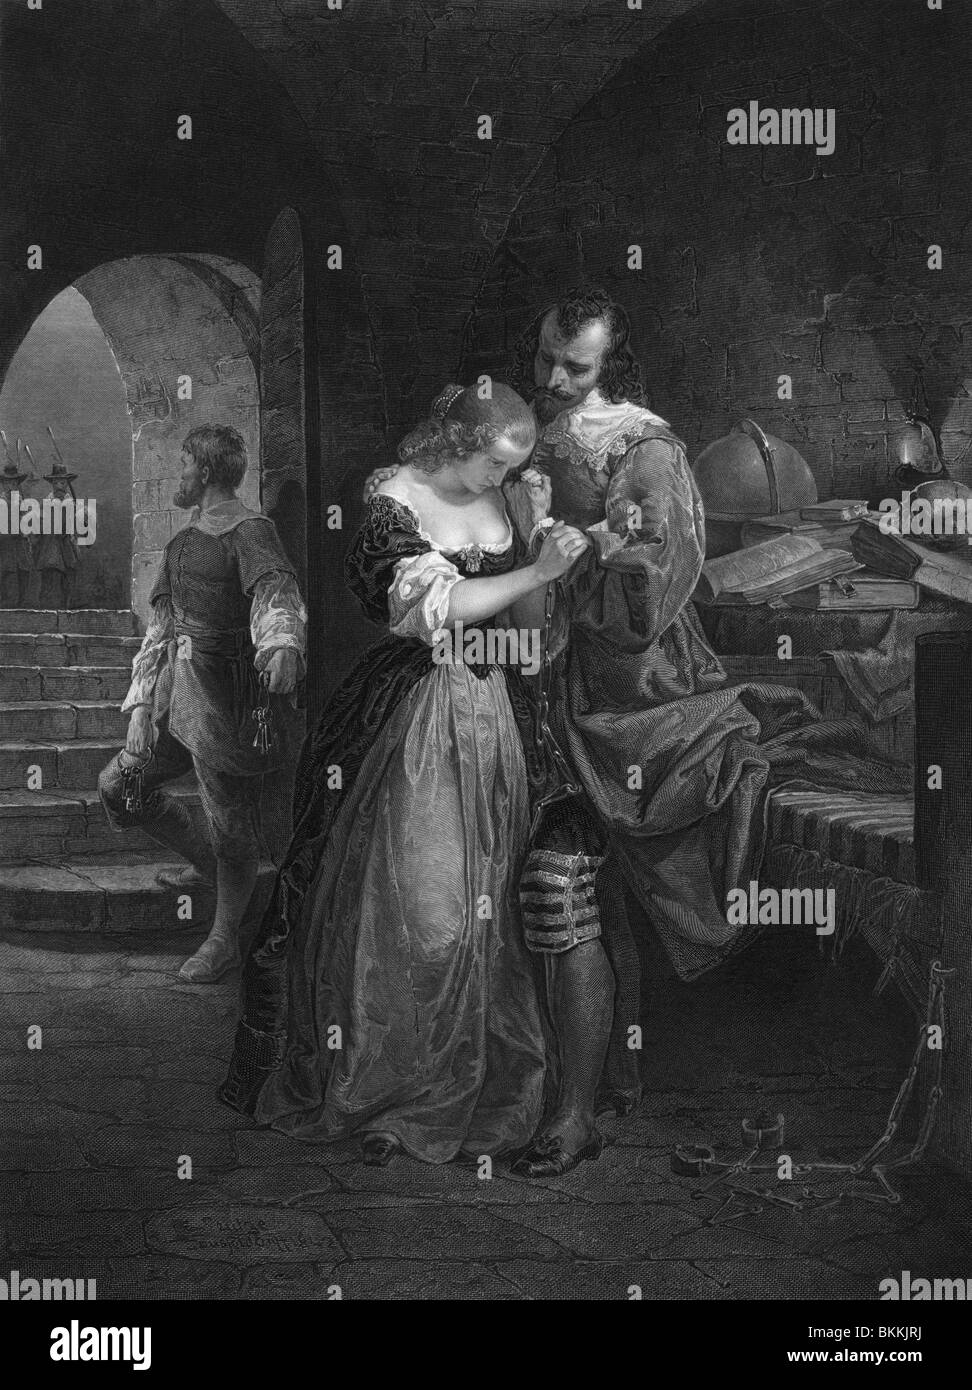 Vintage print depicting Sir Walter Raleigh bidding farewell to his wife on the morning of his execution for treason - Stock Image